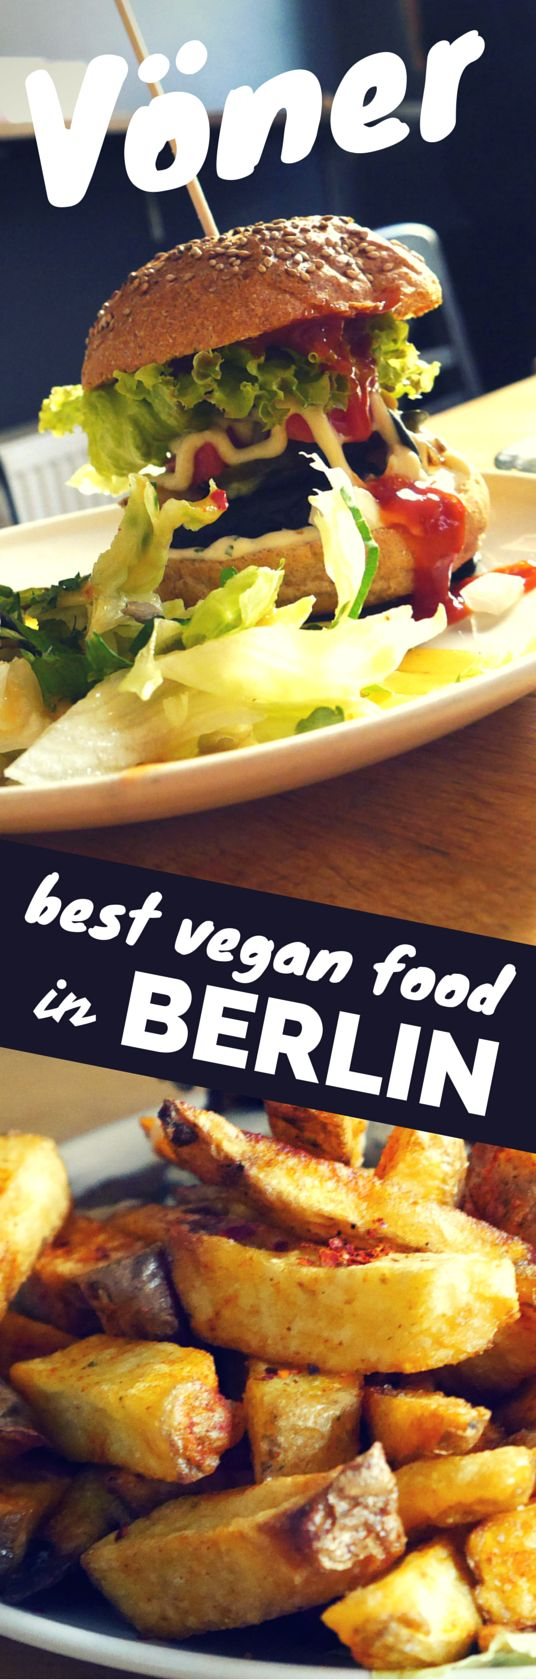 Love vegan food & want to try the best food in arguably the best vegan restaurant in Berlin? Try a delicious vegan kebab at Voner, Berlin's fast food haven.